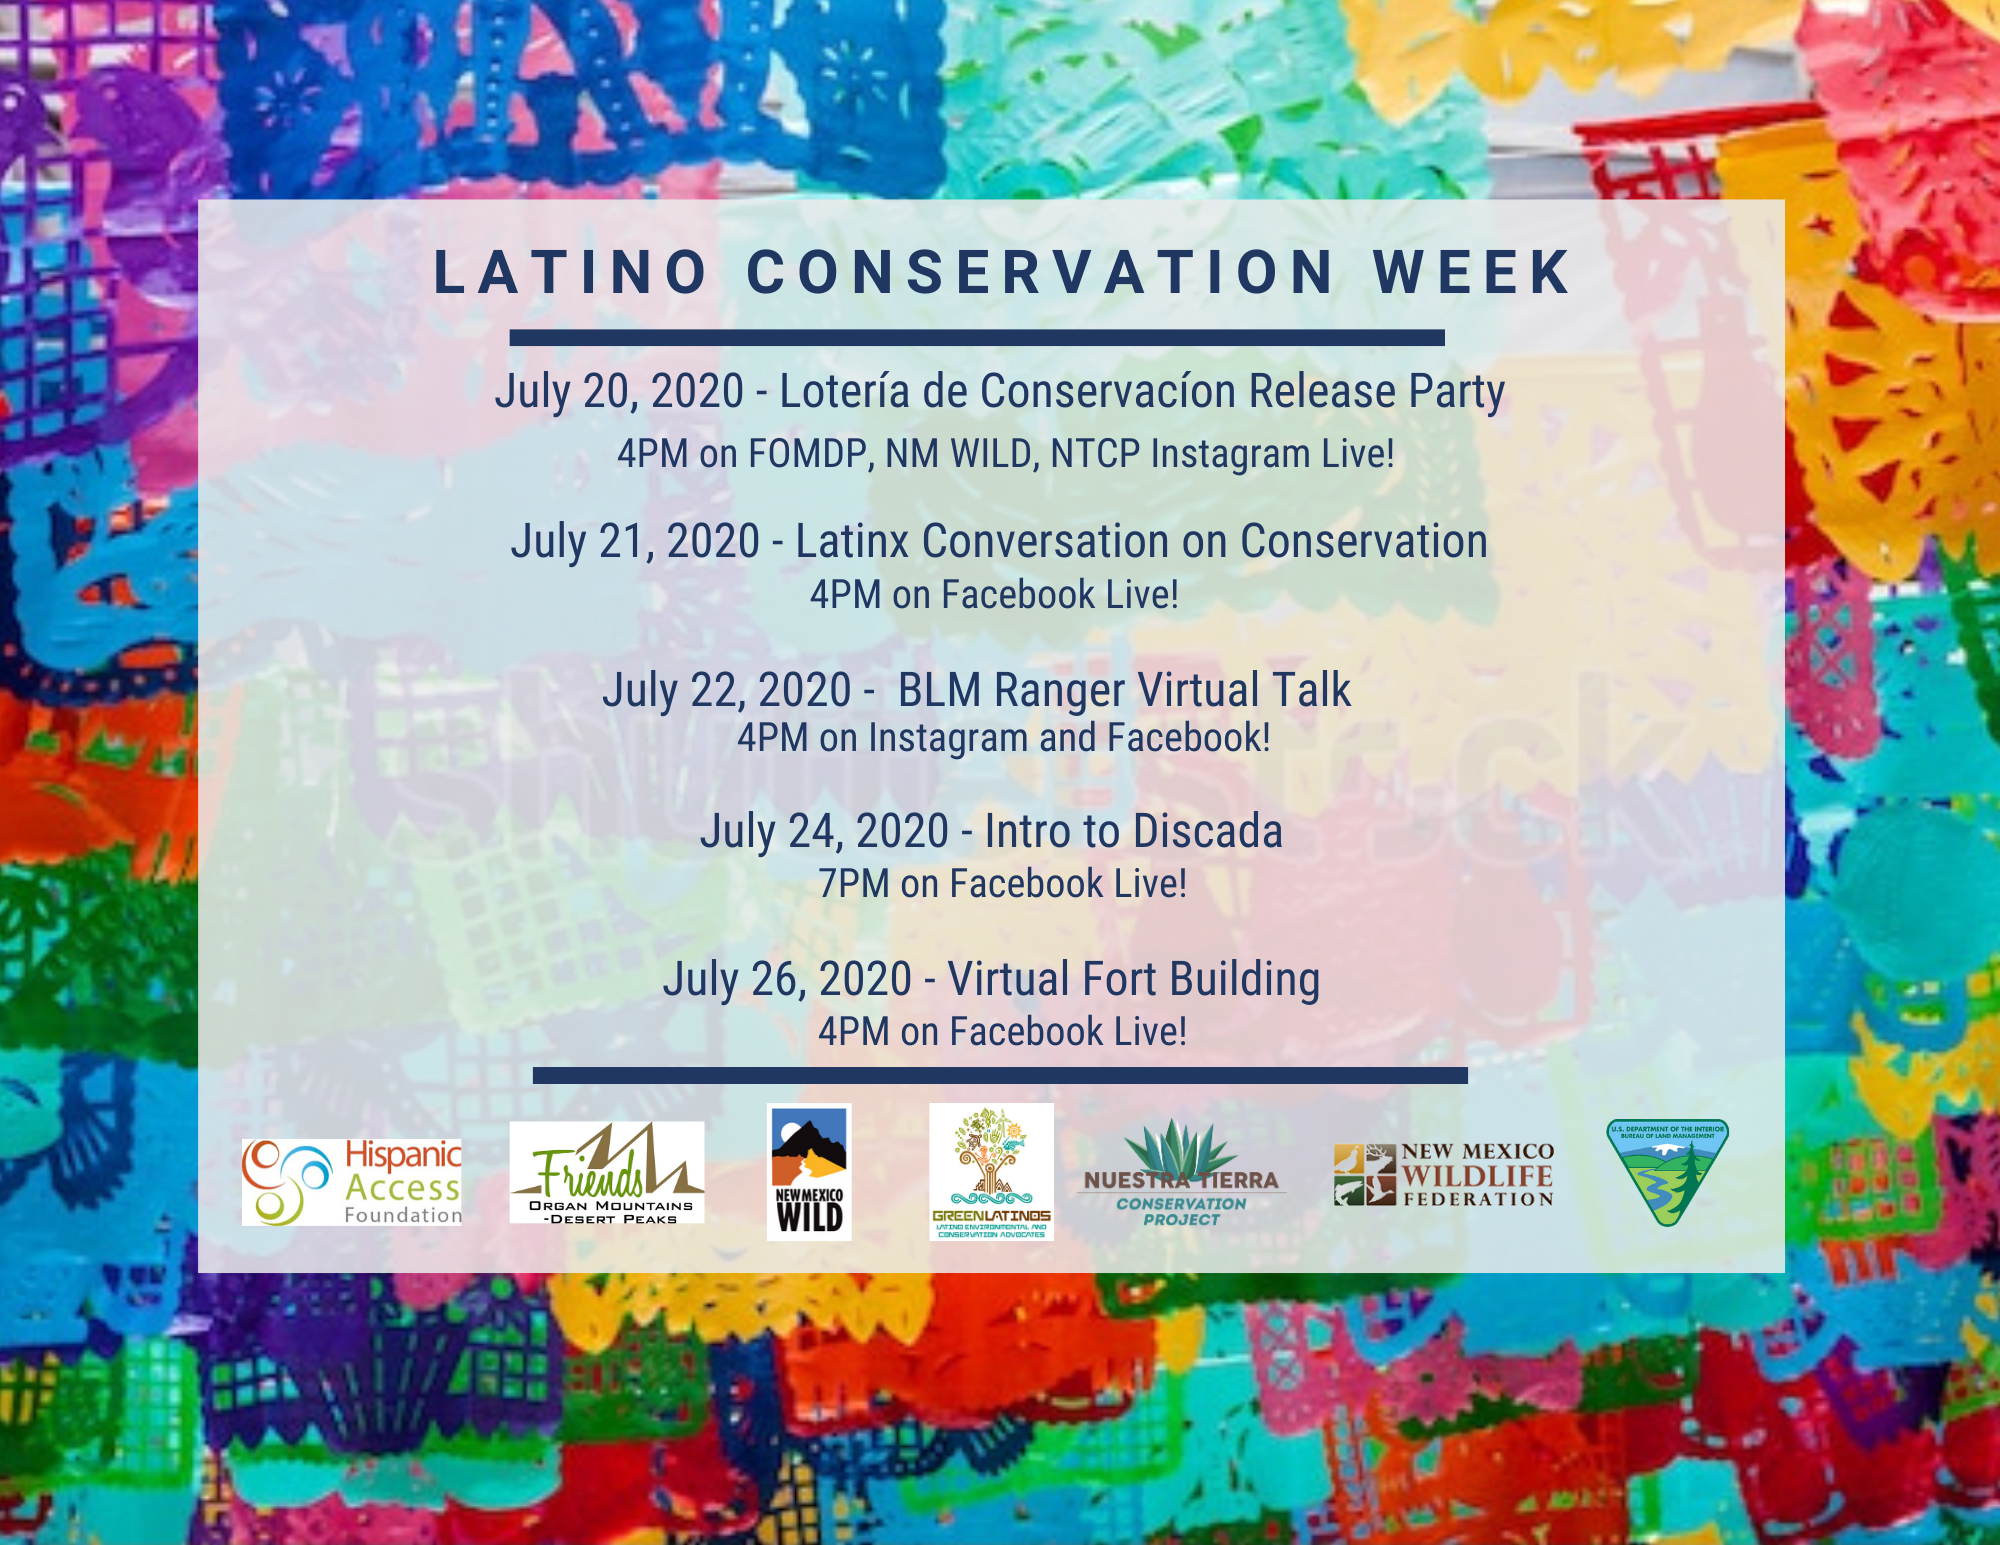 Local conservation organizations celebrate Latino Conservation Week in New Mexico virtually, July 18-26